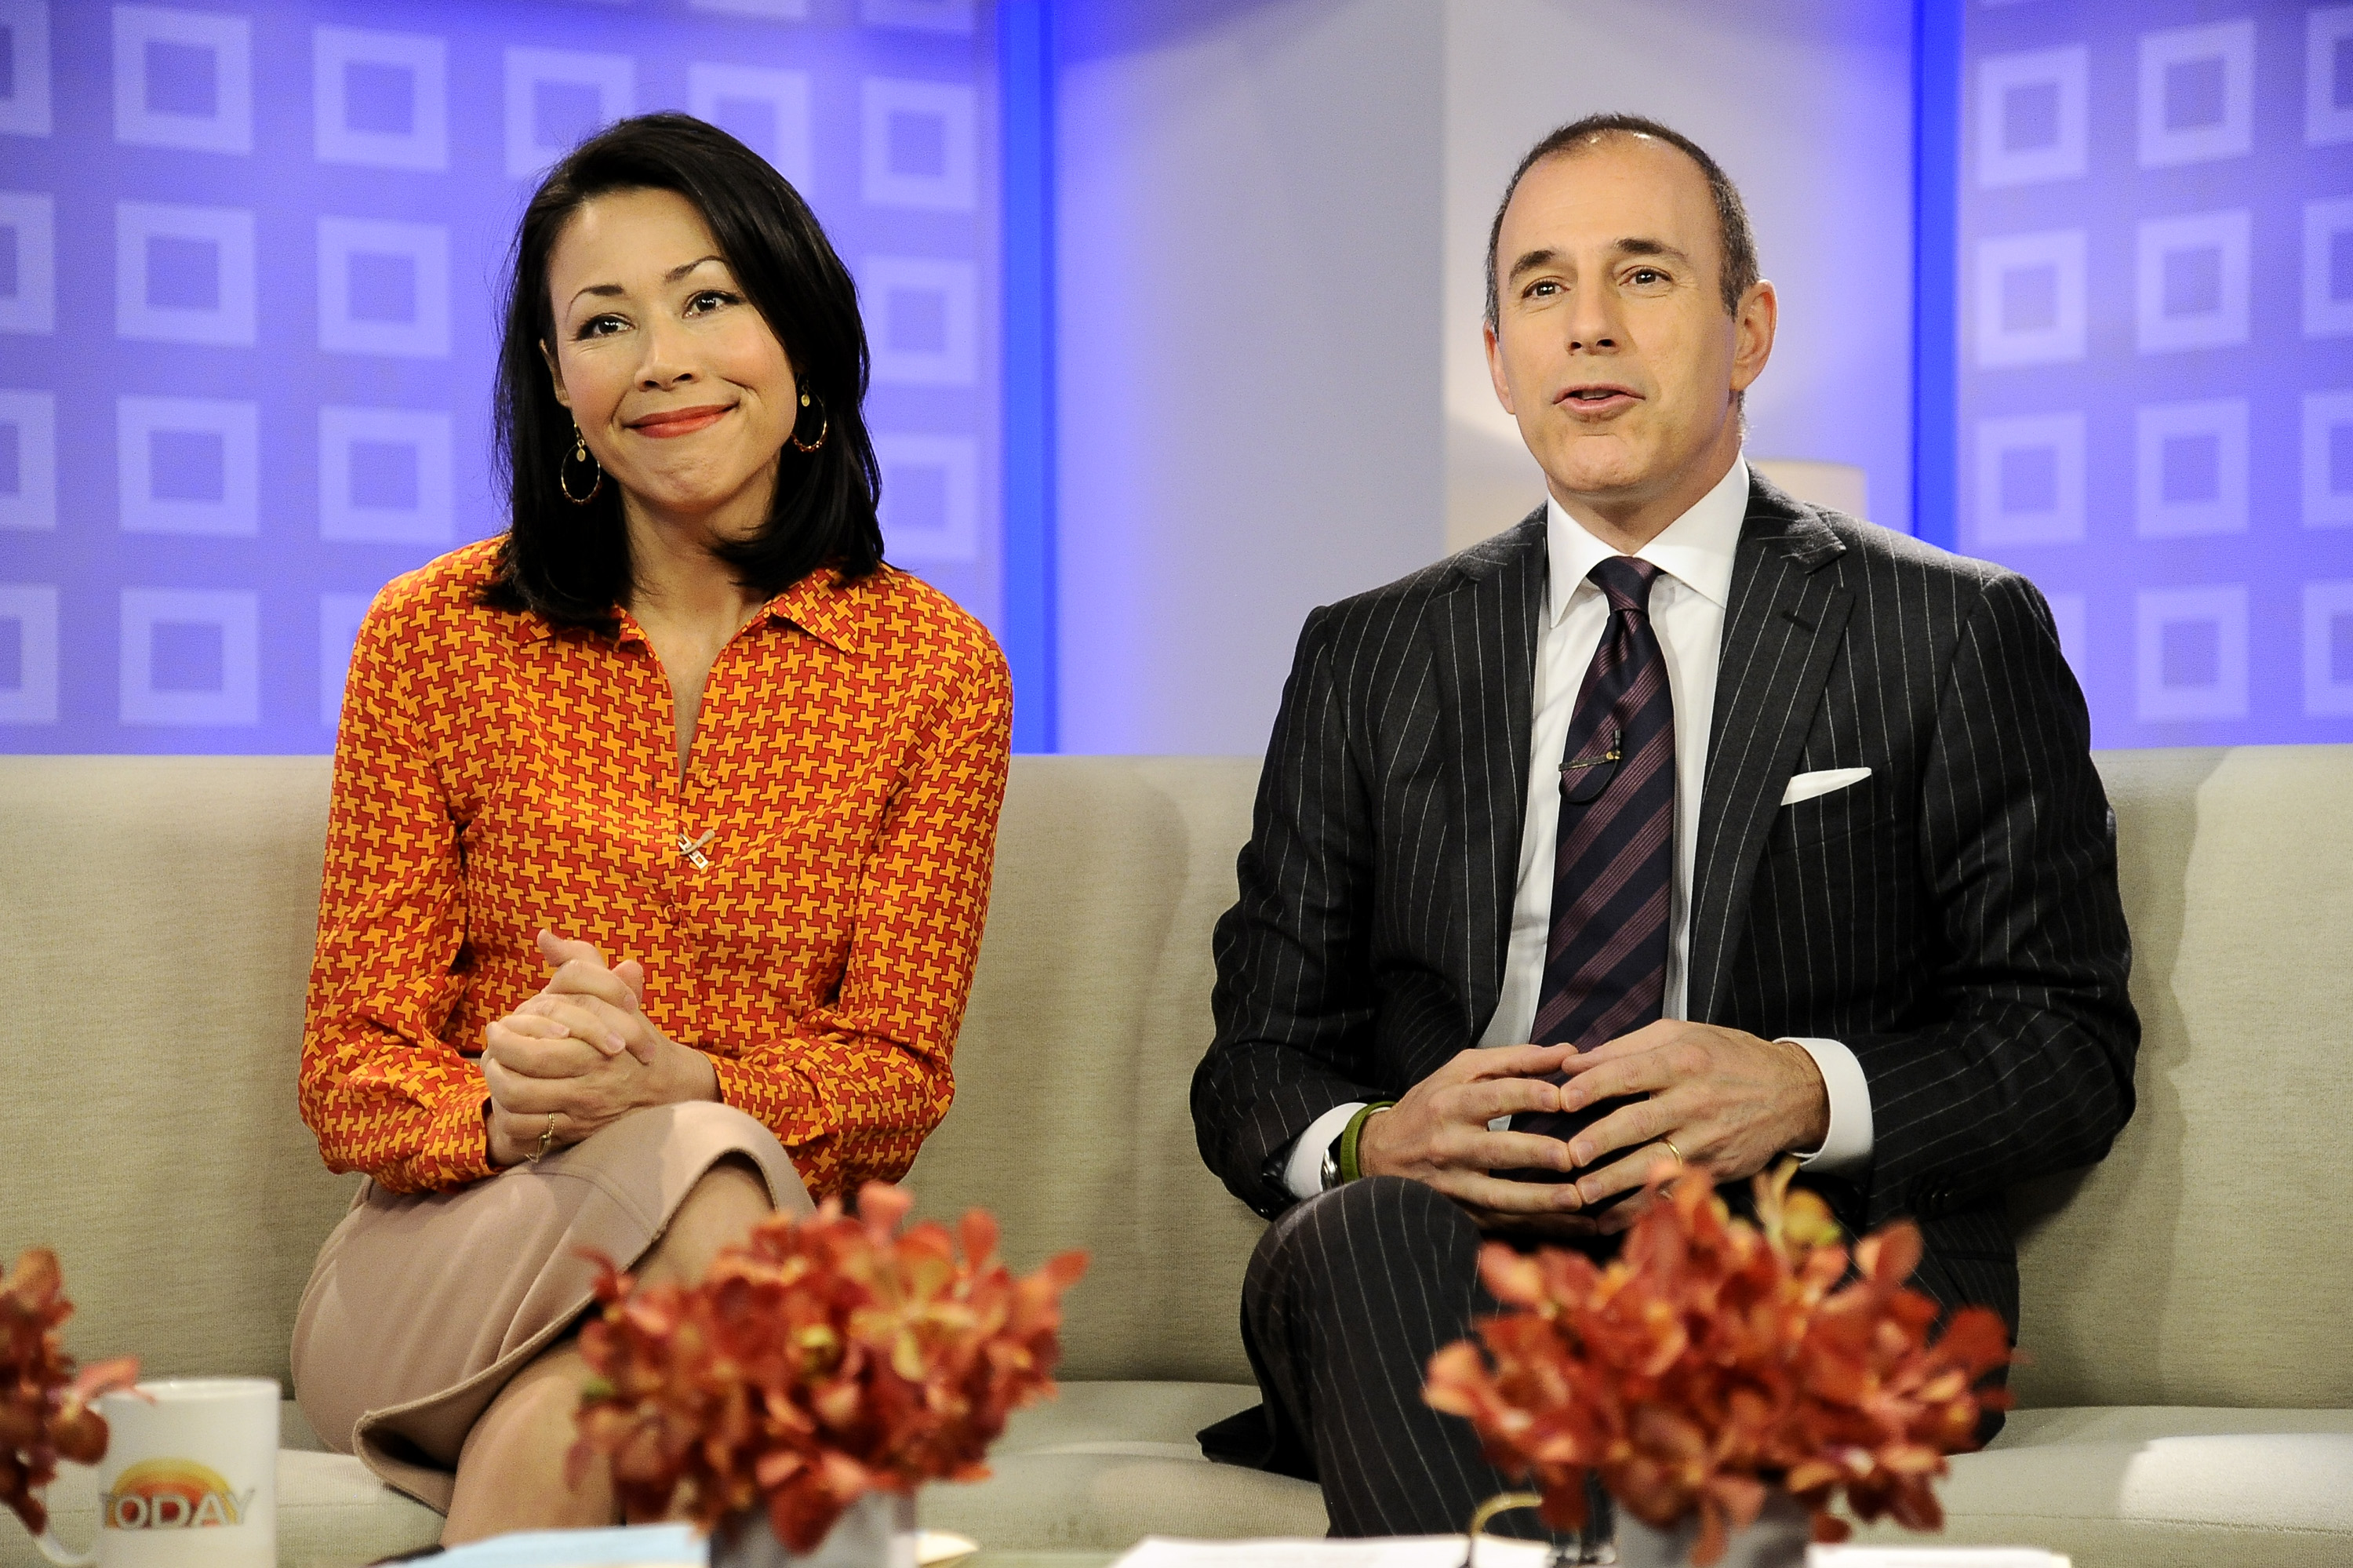 ann-curry-today-show